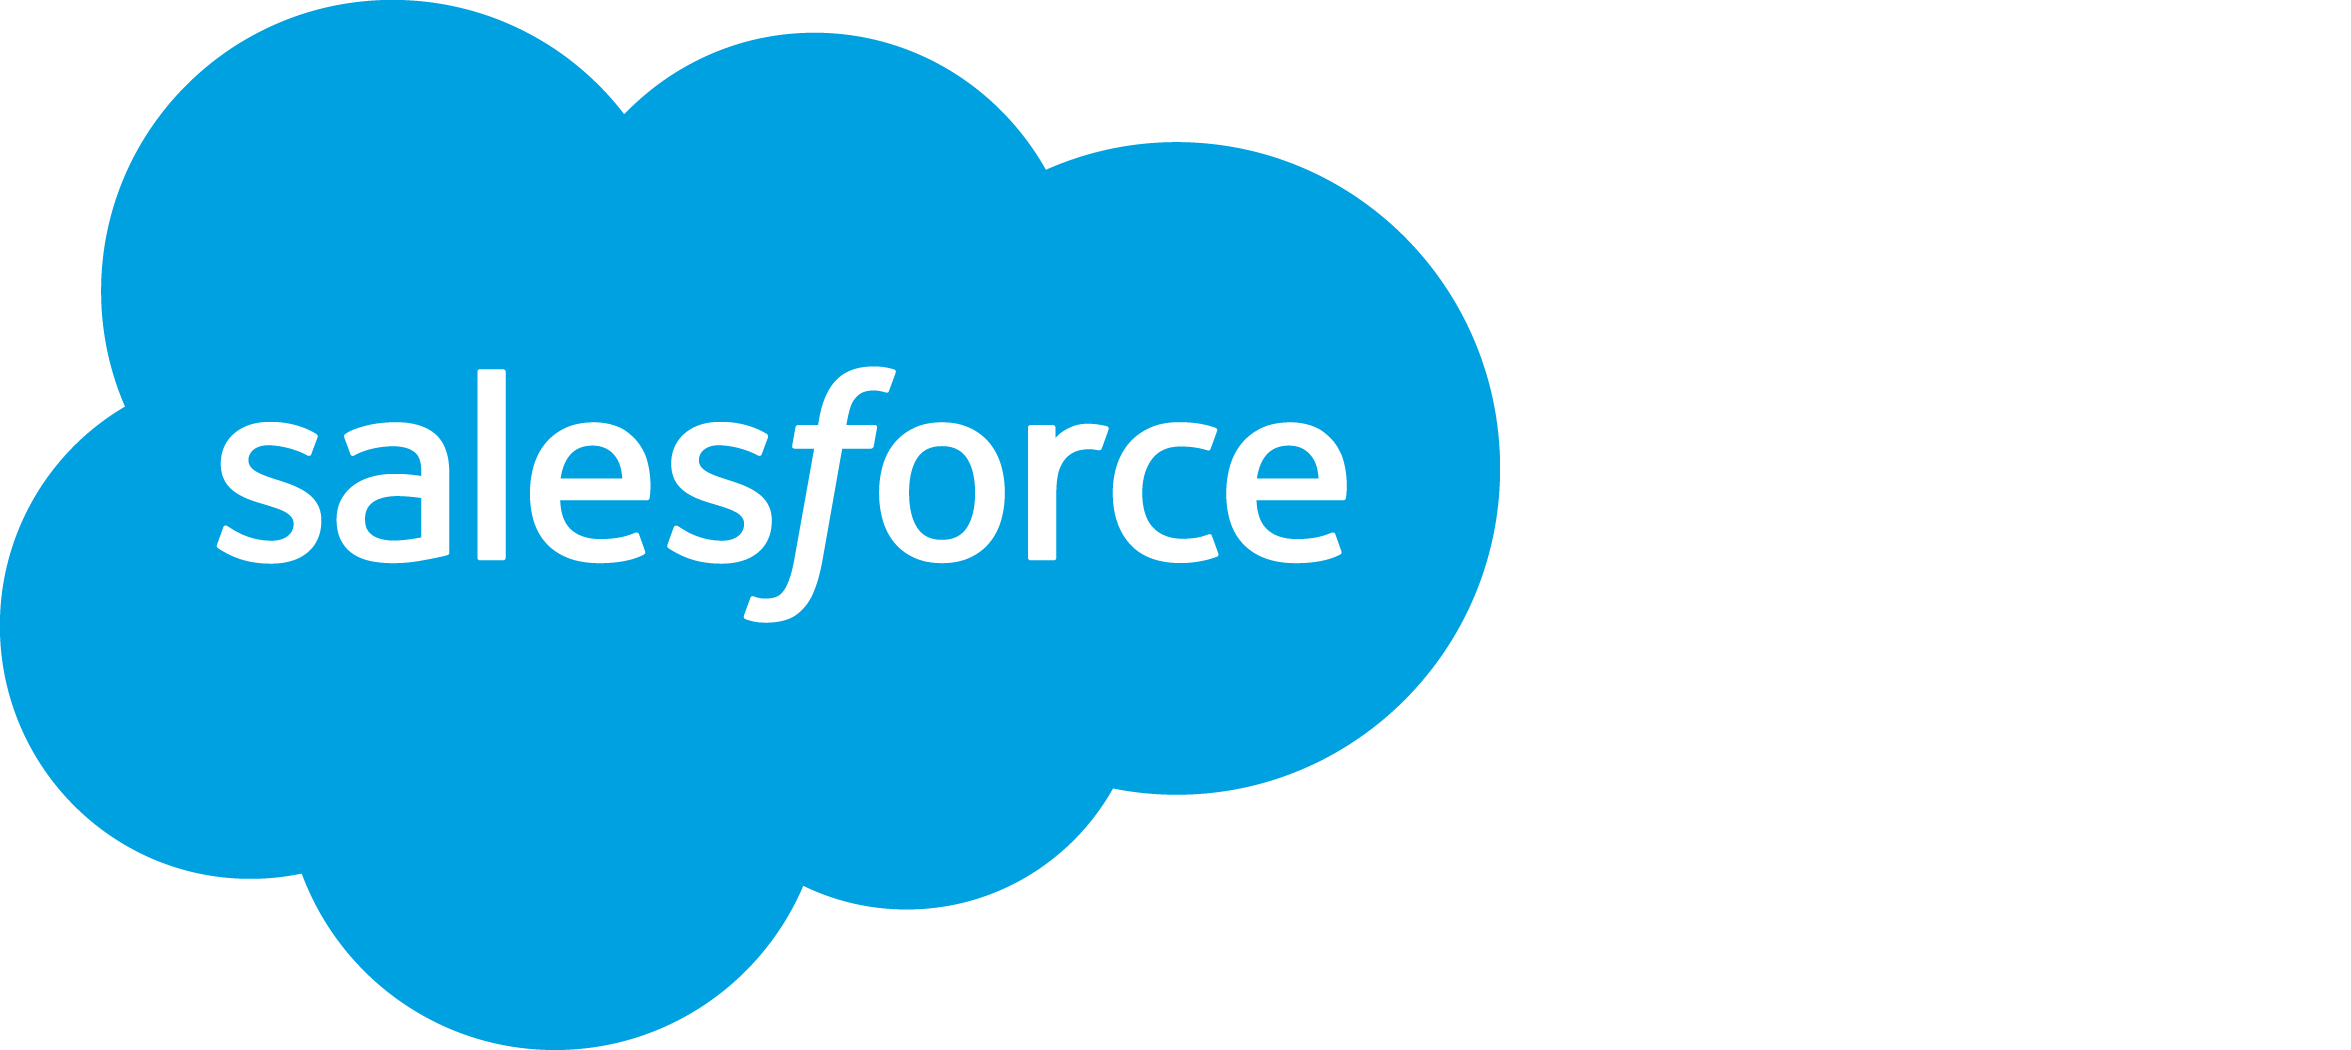 Salesforce trust.png